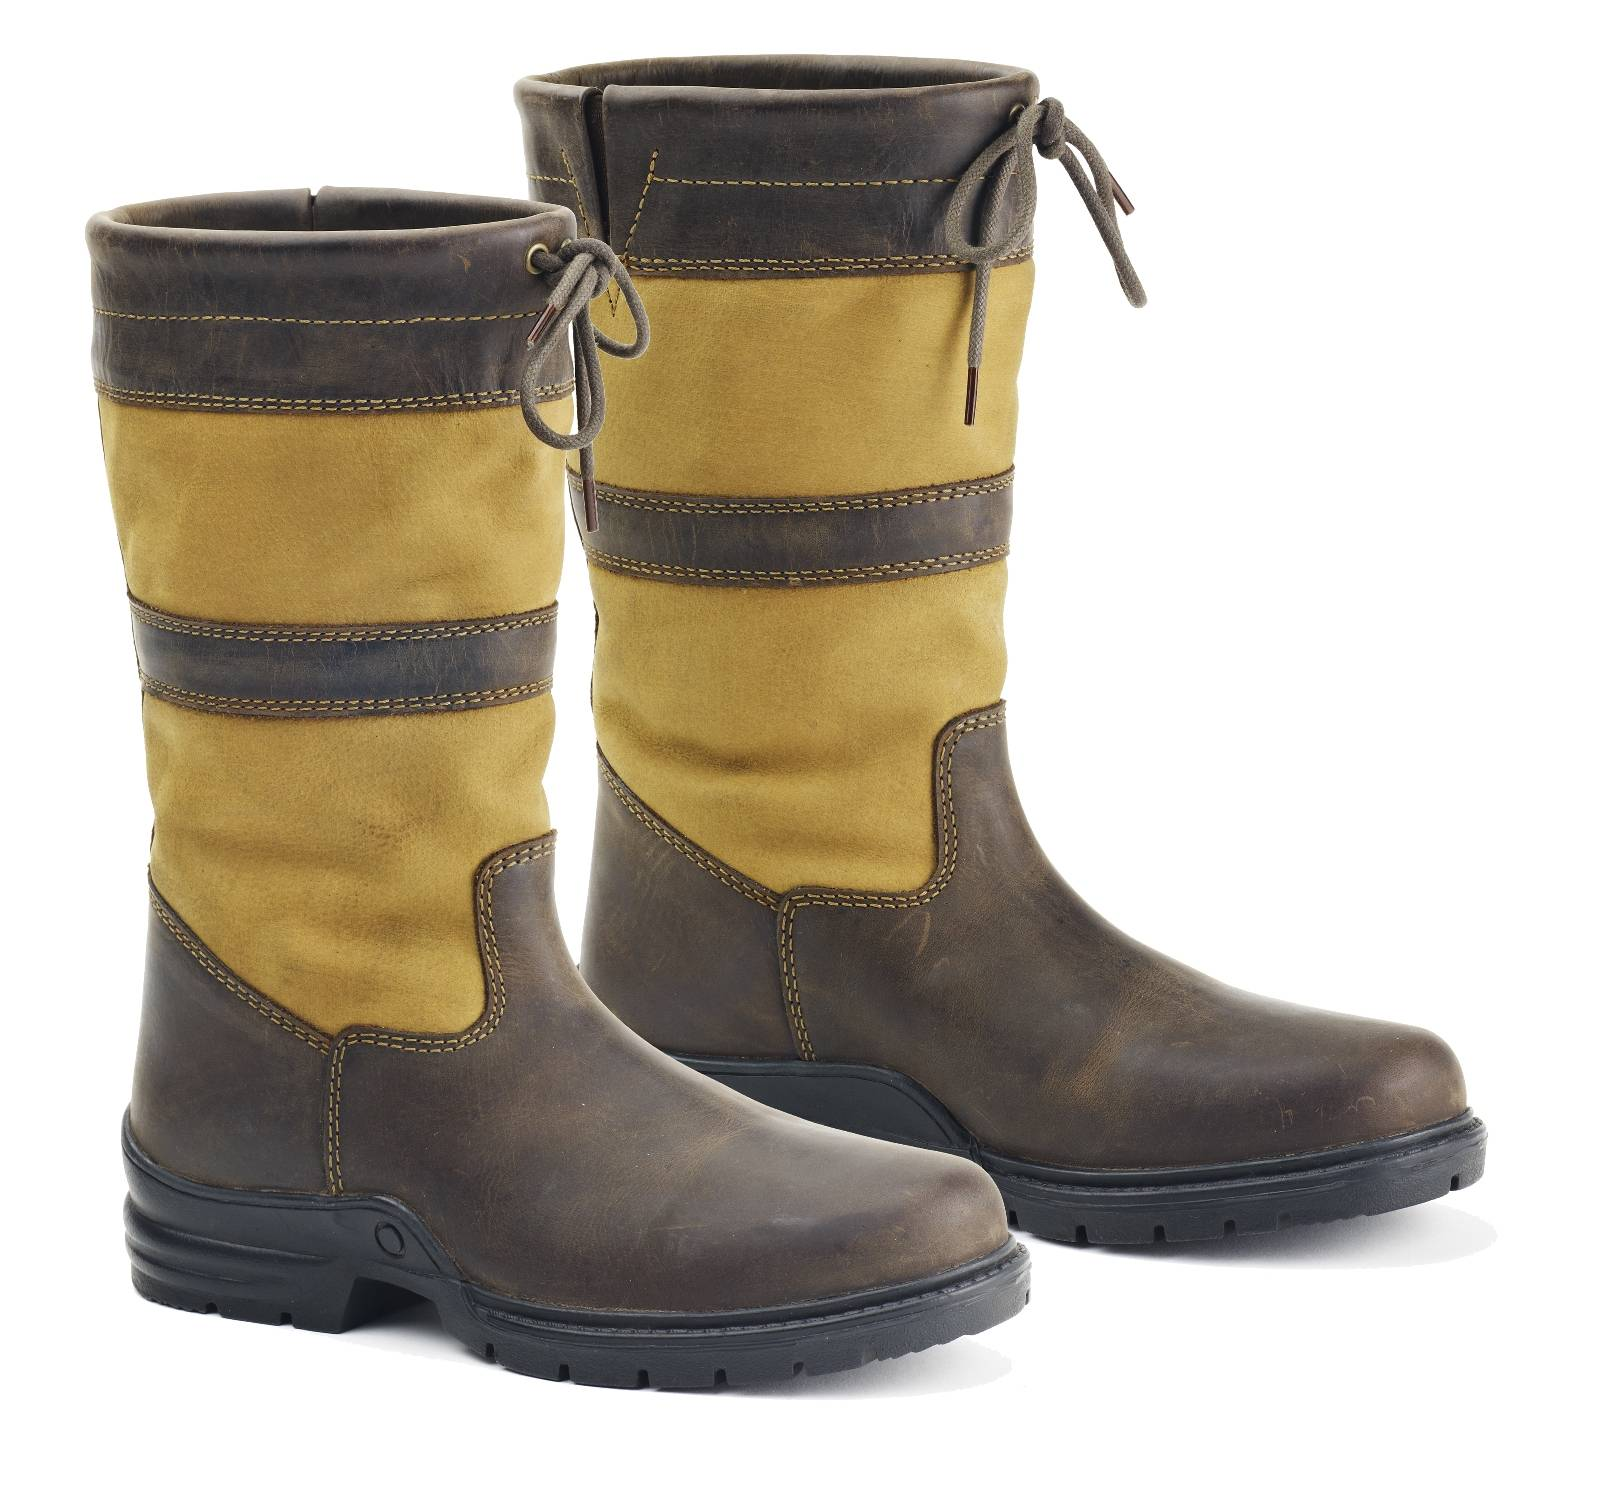 Ovation Adie Country Boots - Ladies